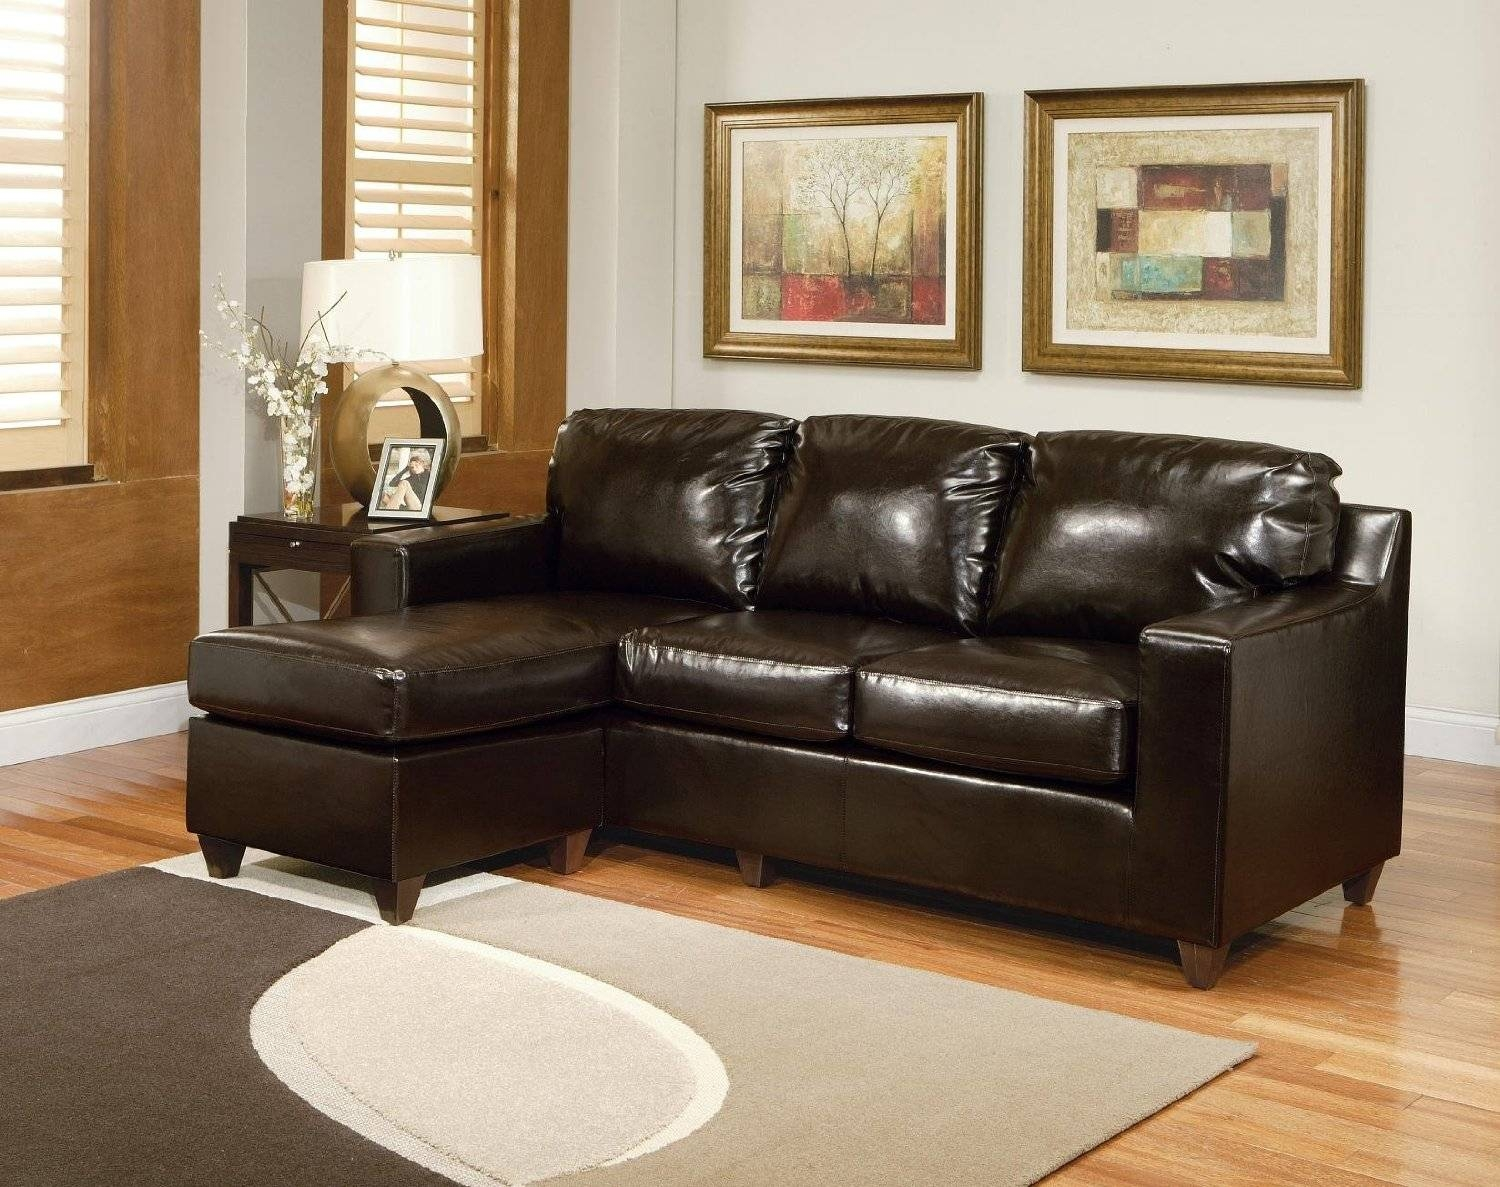 Amusing Sofa Sectionals For Small Spaces 41 With Additional inside Contemporary Black Leather Sectional Sofa Left Side Chaise (Image 2 of 30)